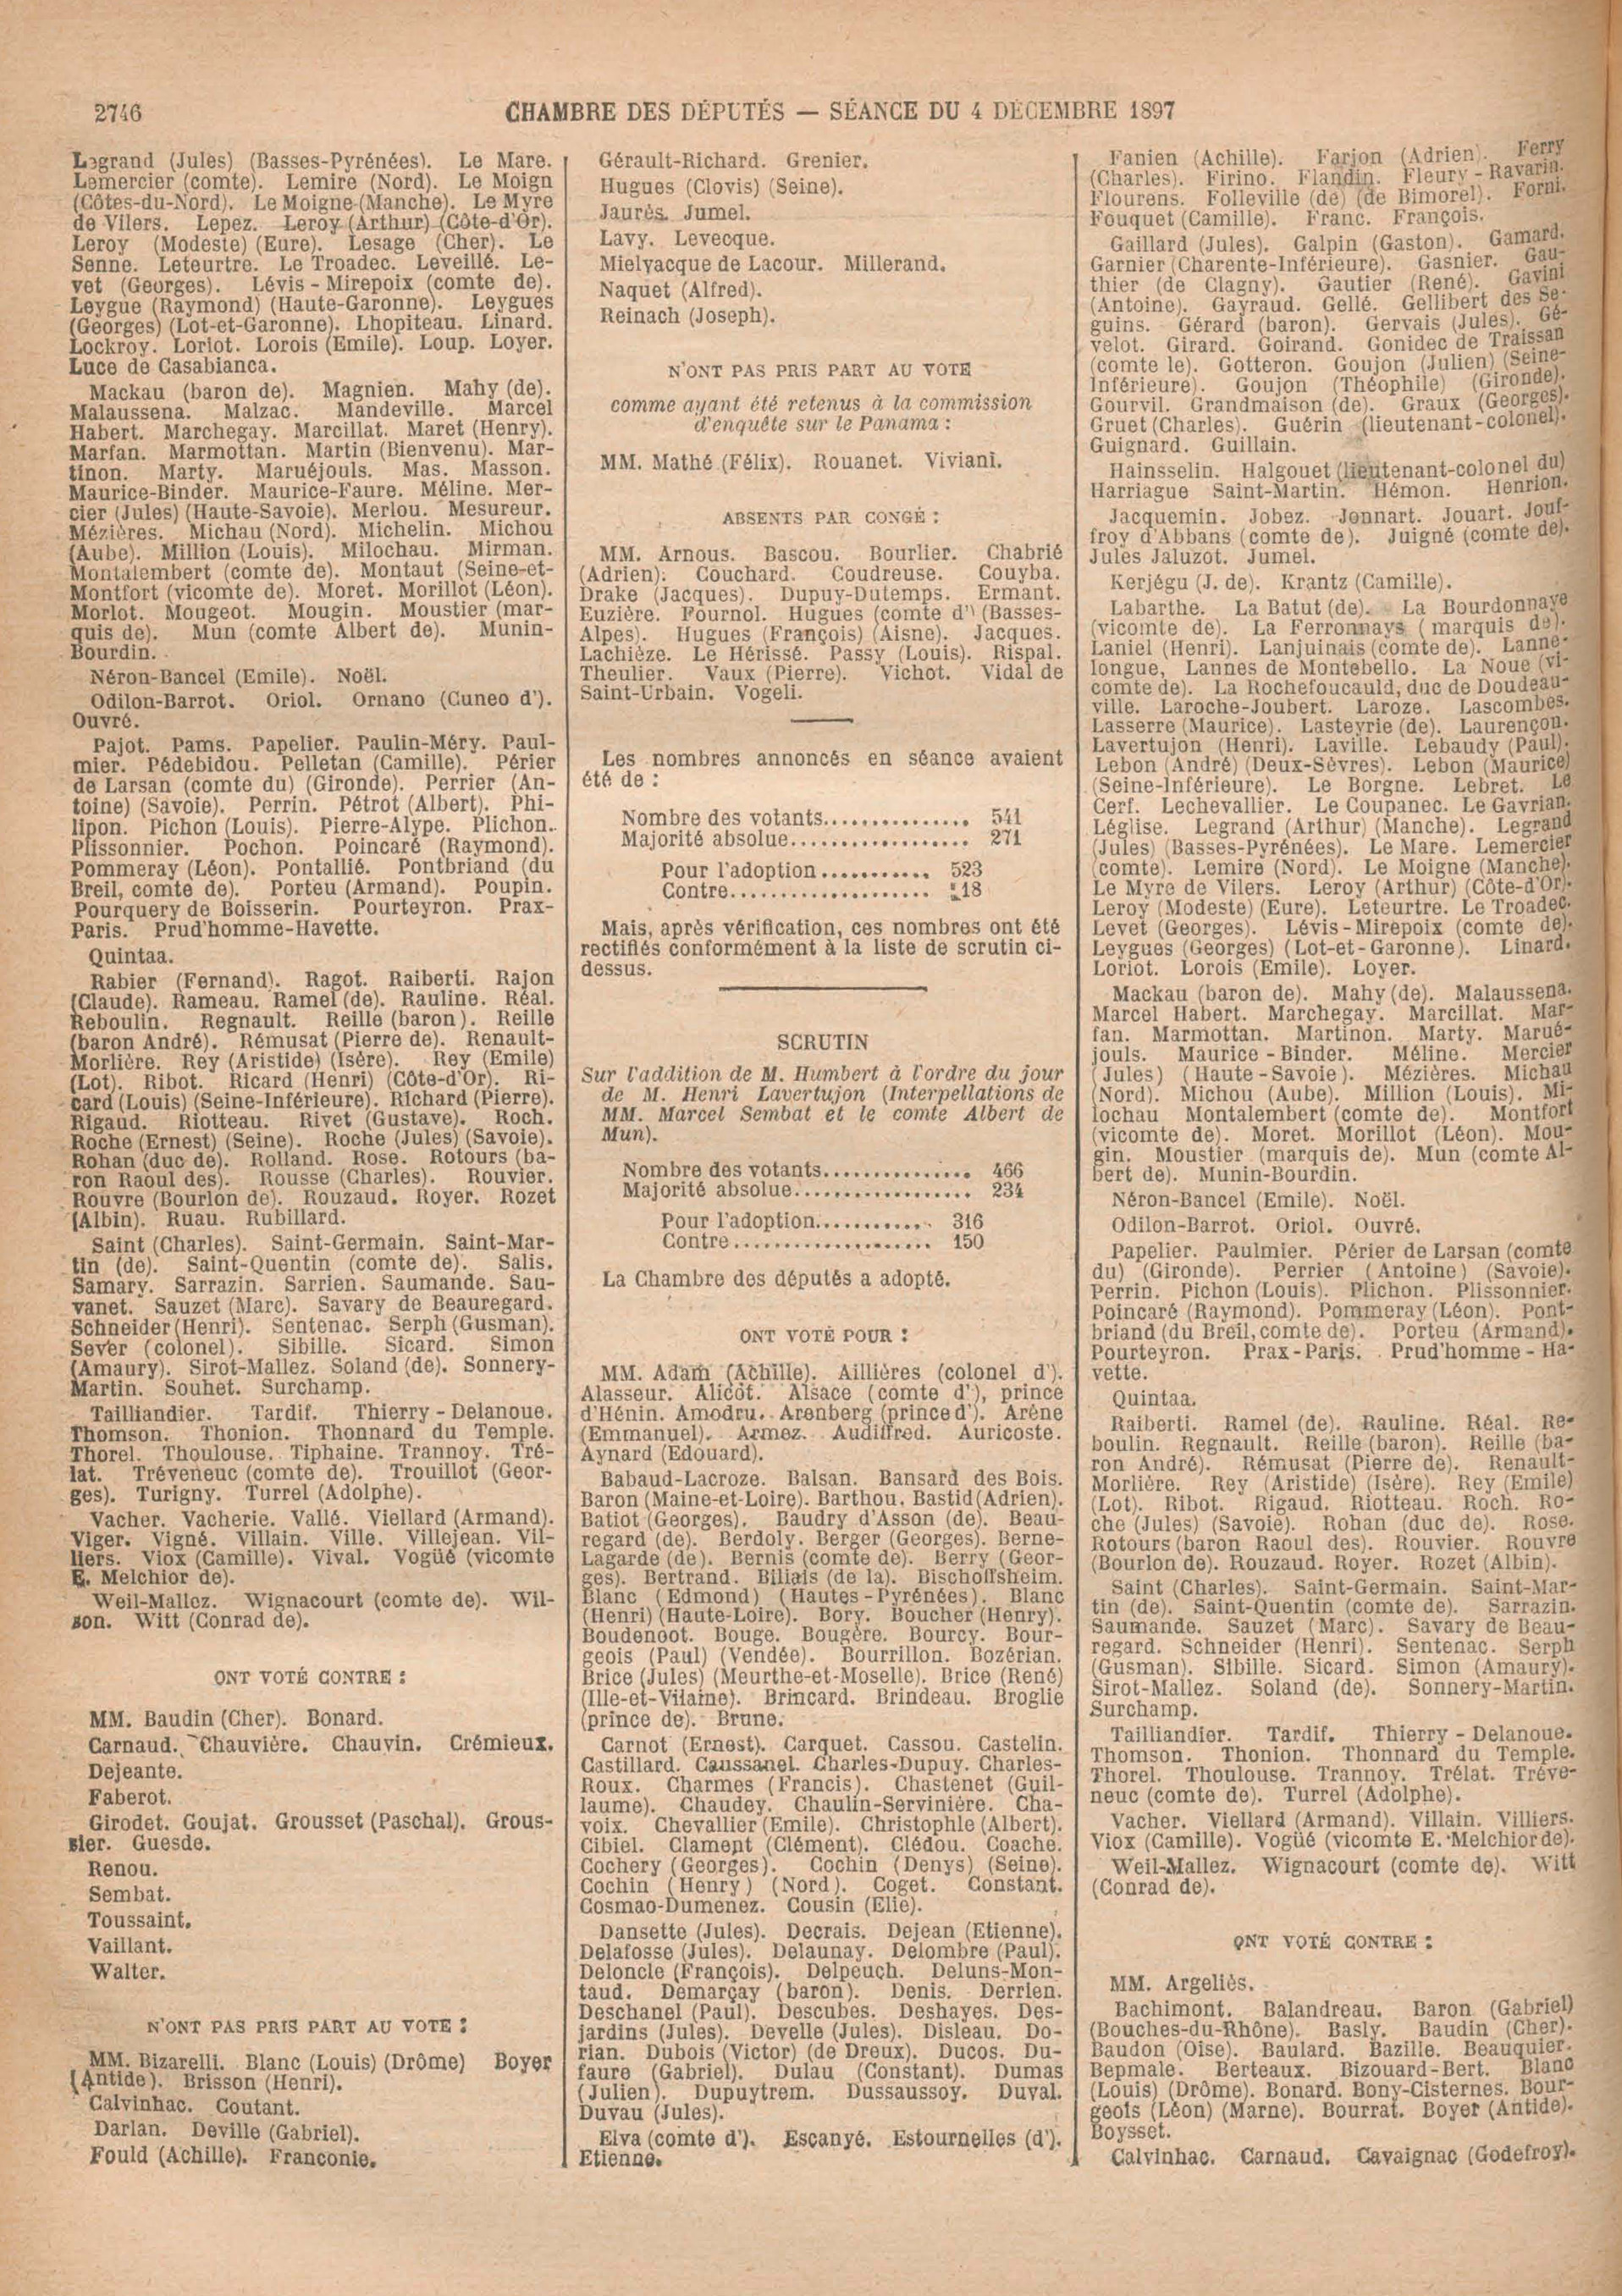 http://expo-paulviollet.univ-paris1.fr/wp-content/uploads/2017/09/Journal_officiel_de_la_République_séance-du-4-décembre-1897_Page_15.jpg